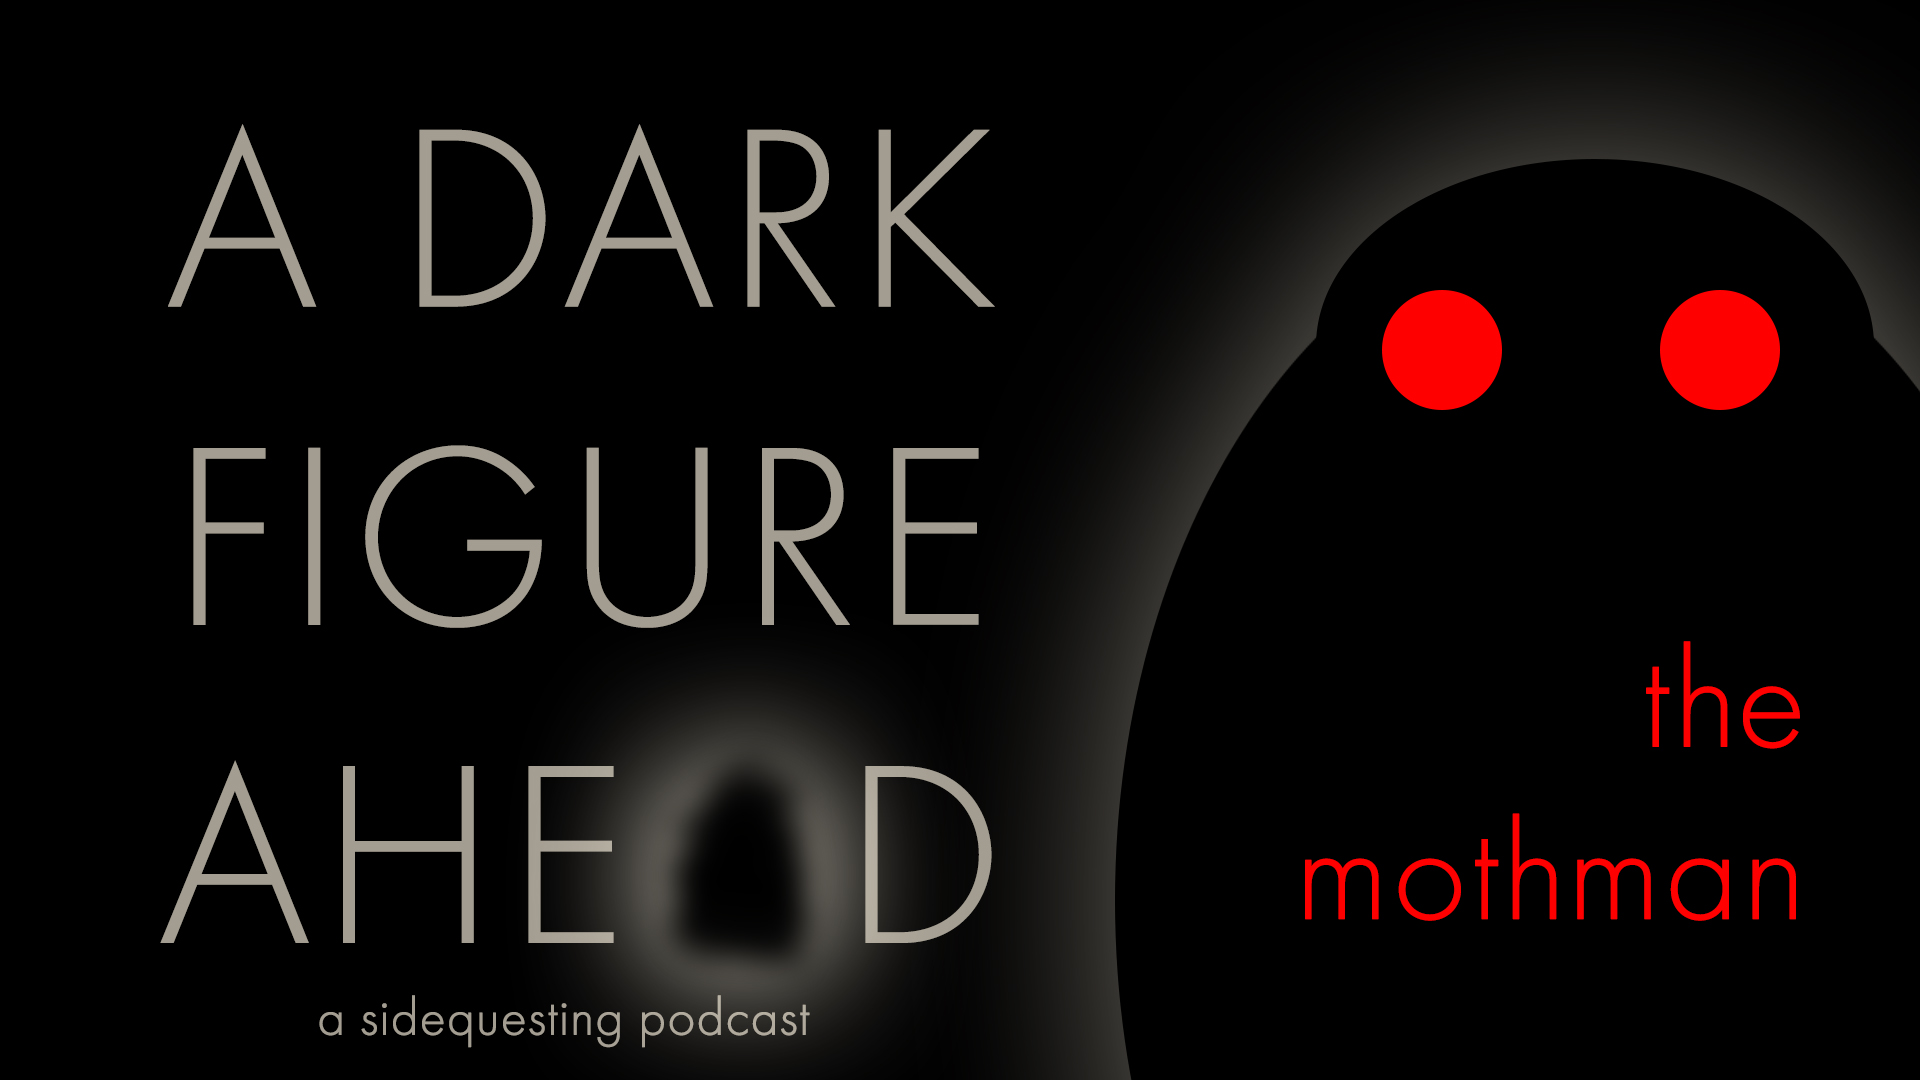 A Dark Figure Ahead: The Mothman